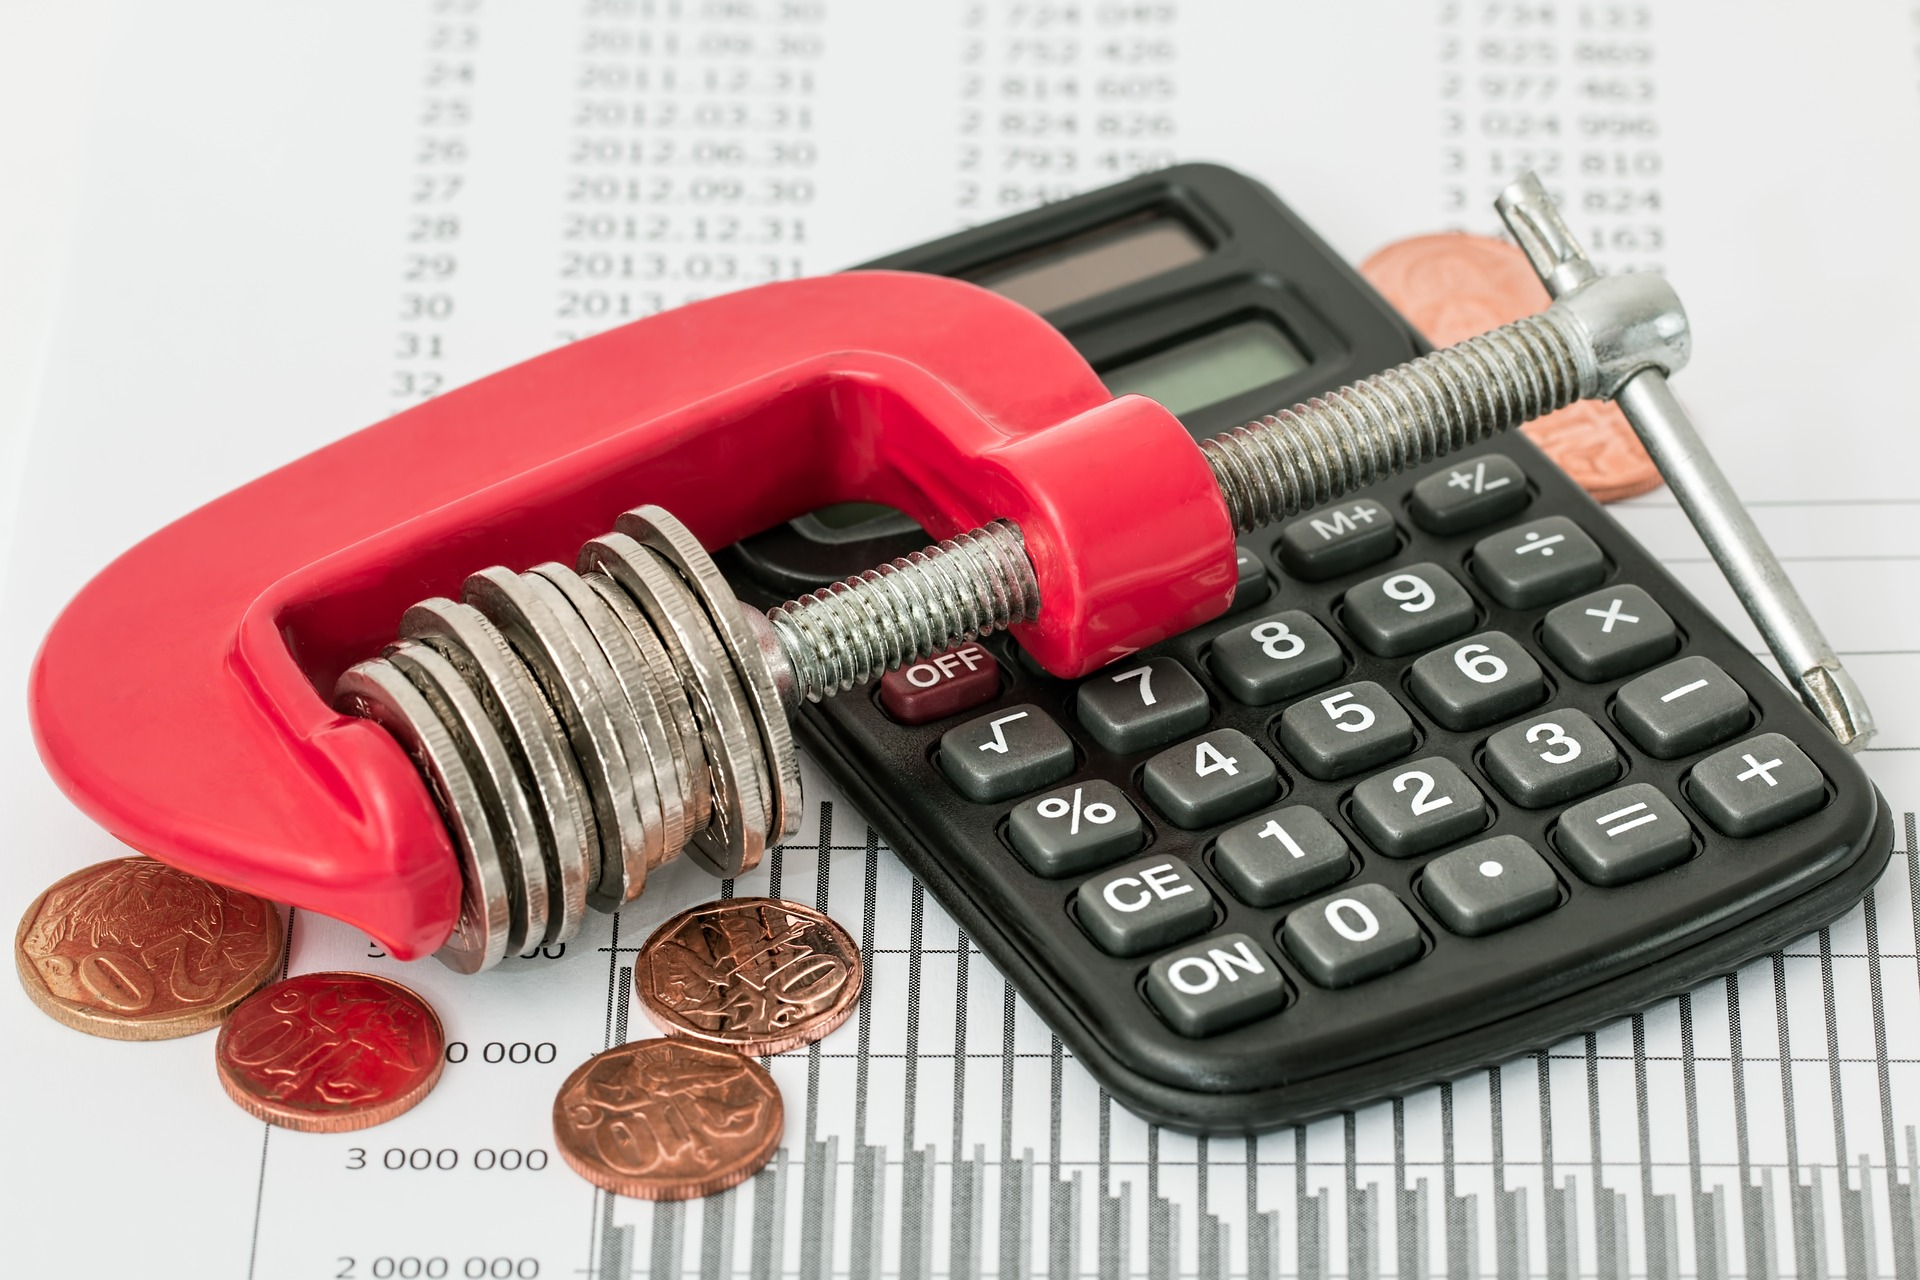 Beginner's Guide to Budgeting & Why it's Important